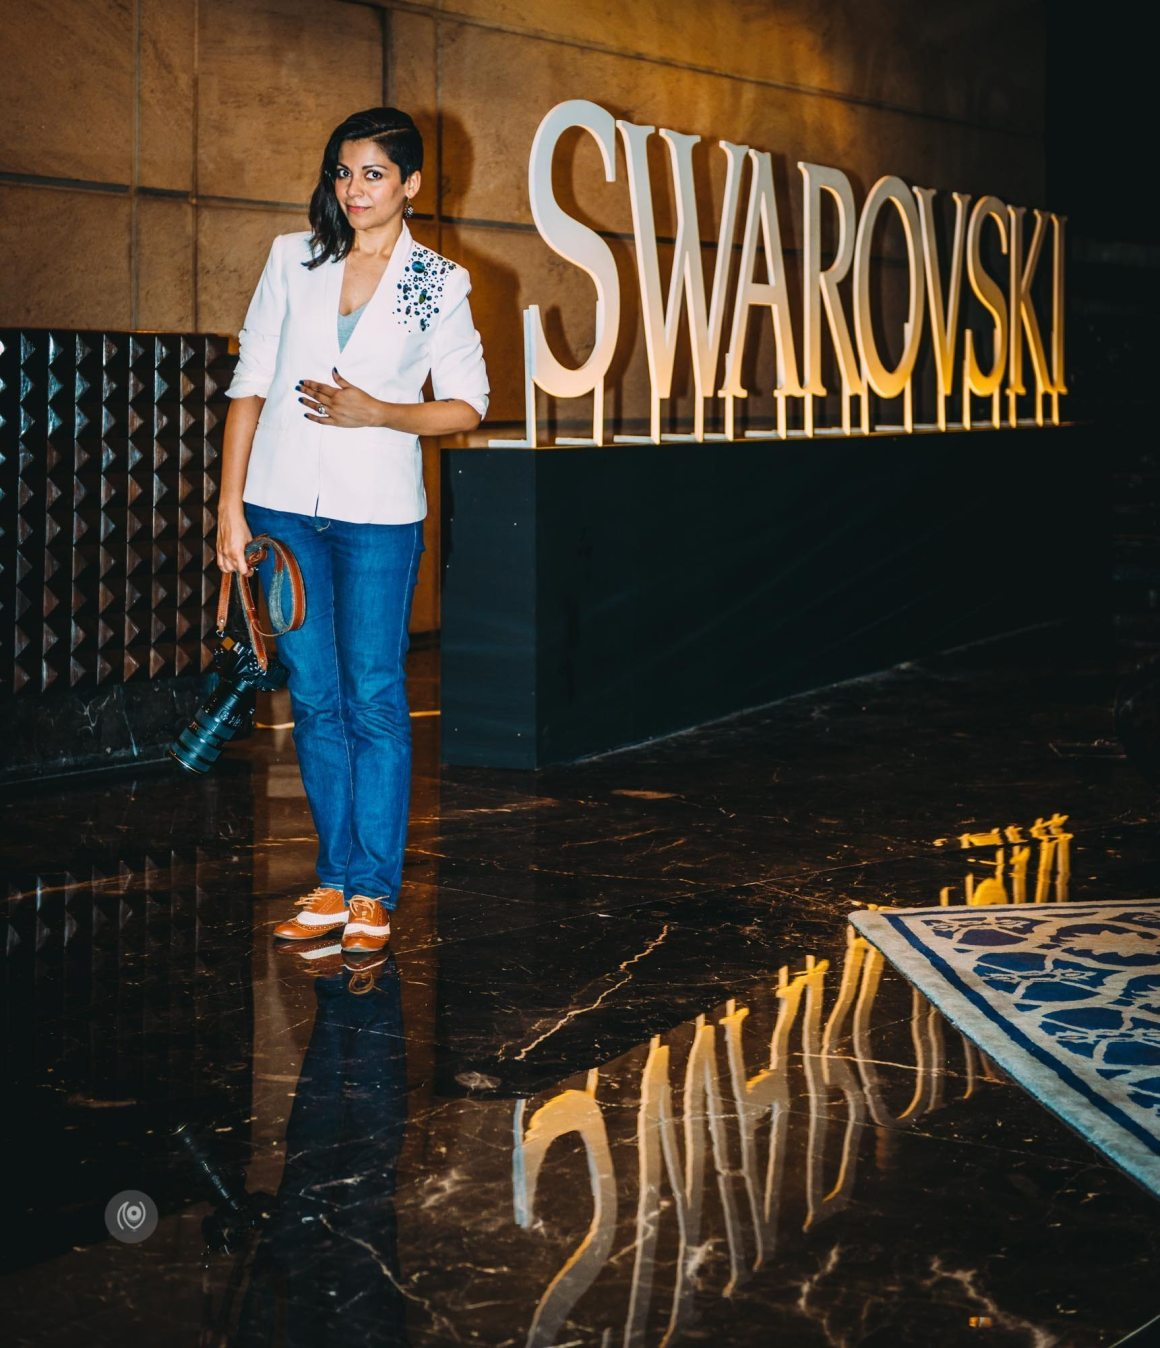 Naina.co, Visual Storyteller, Luxury Brands, Naina Redhu, Professional Photographer, Experience Collector, Luxury Photographer, Luxury Blogger, Lifestyle, Visual Storyteller for Luxury Brands, EyesForLuxury, Luxury Blogger, Lifestyle Blogger, Luxury Photographer India, Lifestyle Photographer India, Luxury Blogger India, Lifestyle Blogger India, #SwarovskixConfluence, #SwarovskiIndia, #SwarovskiCrystals, #NAINAxSwarovskiConfluence, Crystal Jewellery, Jewellery Photographer, Jewellery Photographer India, Jewellery Blogger, Jewellery Blogger India, Indian Jewellery, Designer Jewellery, Fashion Designers, #CoverUp, Personal Style Blogger, Personal Style Photographer, Personal Style, Dressed Up, Taj Palace Hotel, Taj Palace Hotel New Delhi, Taj Palace New Delhi, Taj Palace Delhi, Event Photographer, Event Blogger, Event Photographer India, Event Blogger India, Swarovski